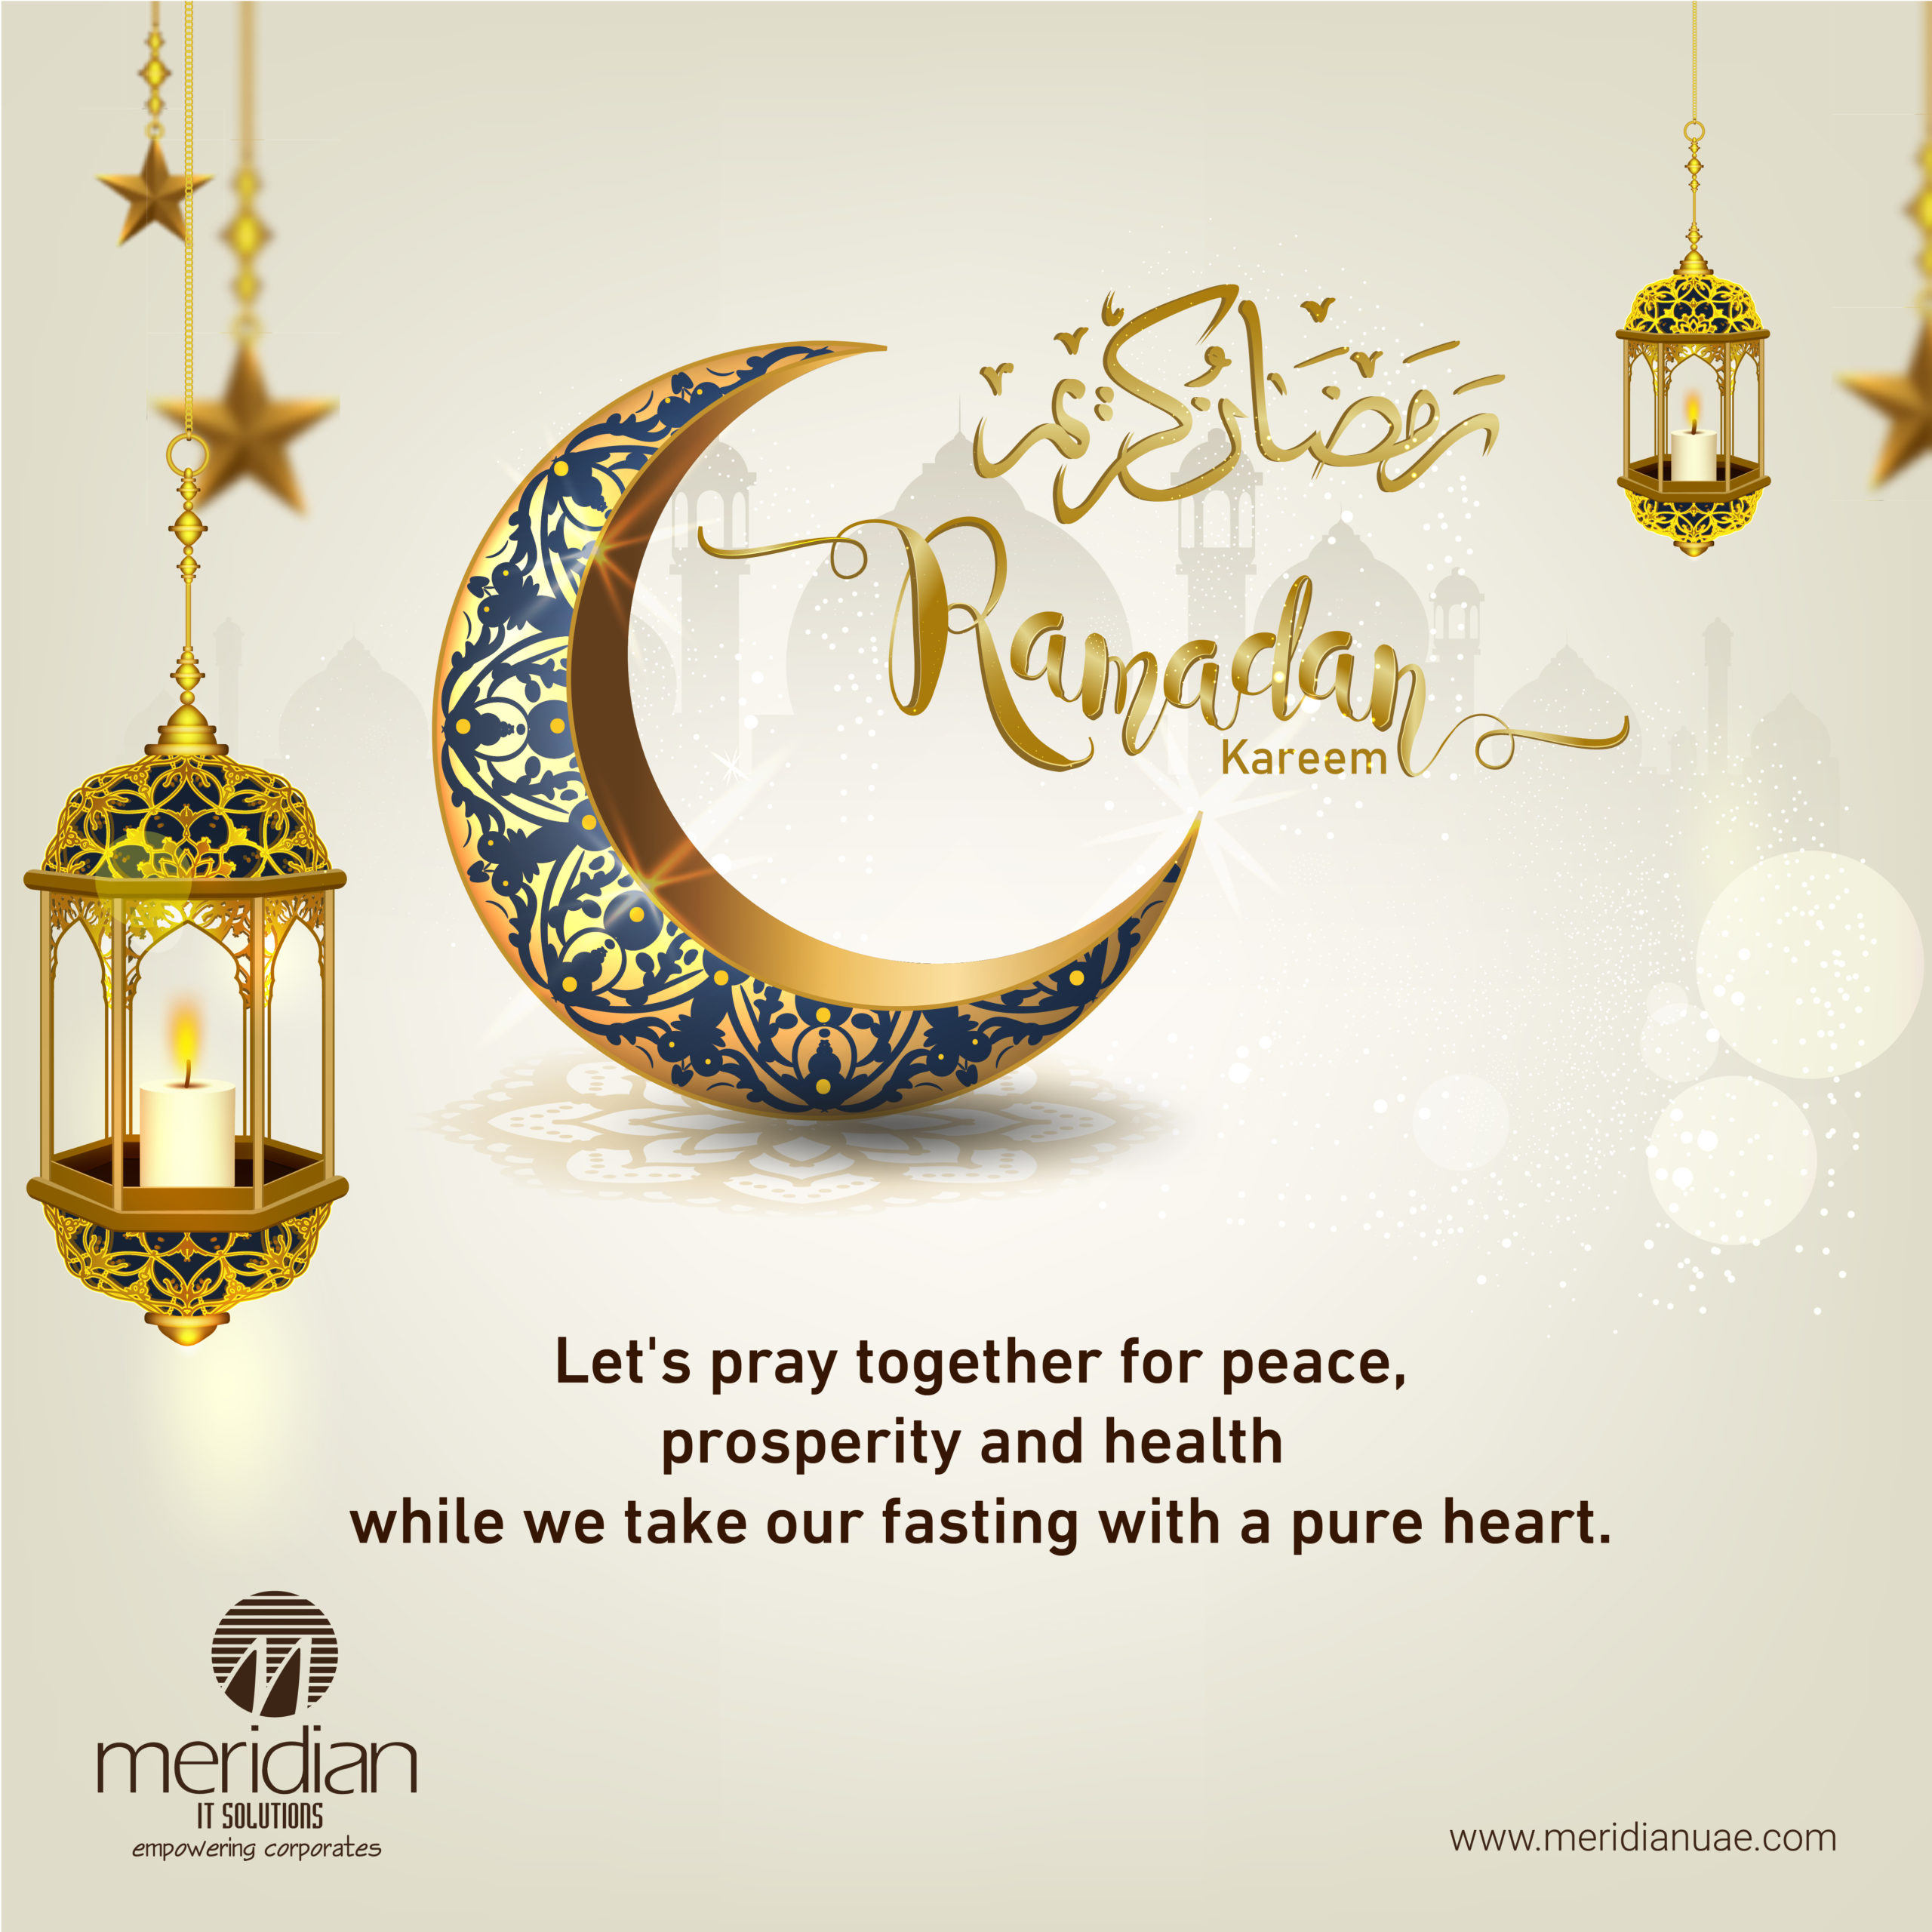 2020 Ramadan Kareem wishes from Meridian IT Solutions